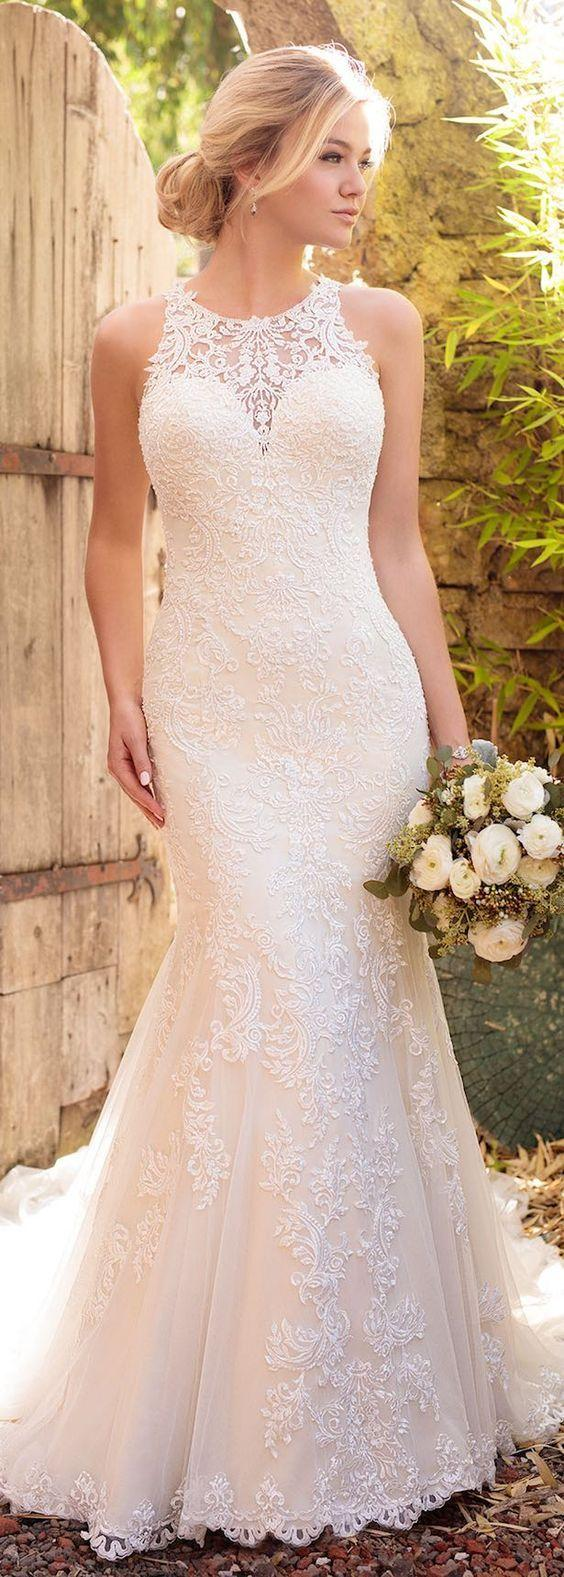 Mariage - What Style Wedding Dress Is For You